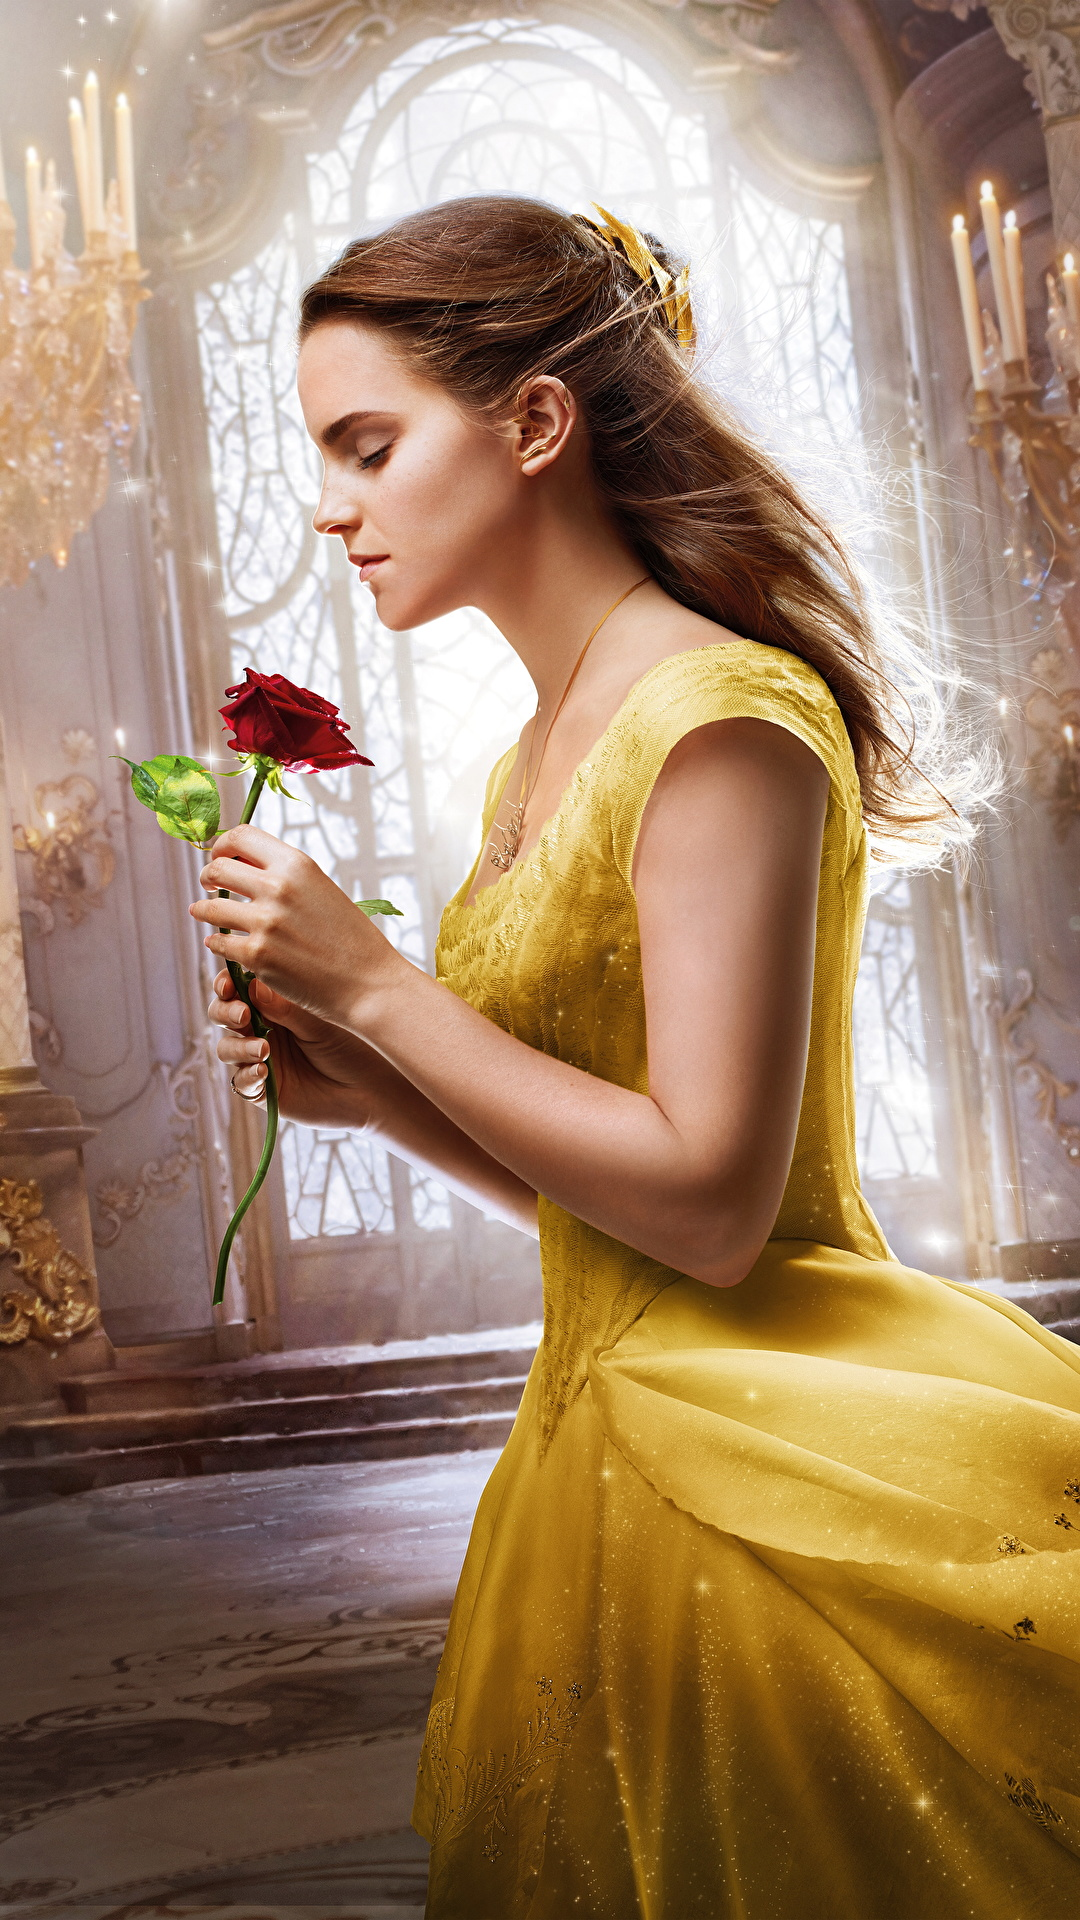 Free Download Images Beauty And The Beast 2017 Emma Watson